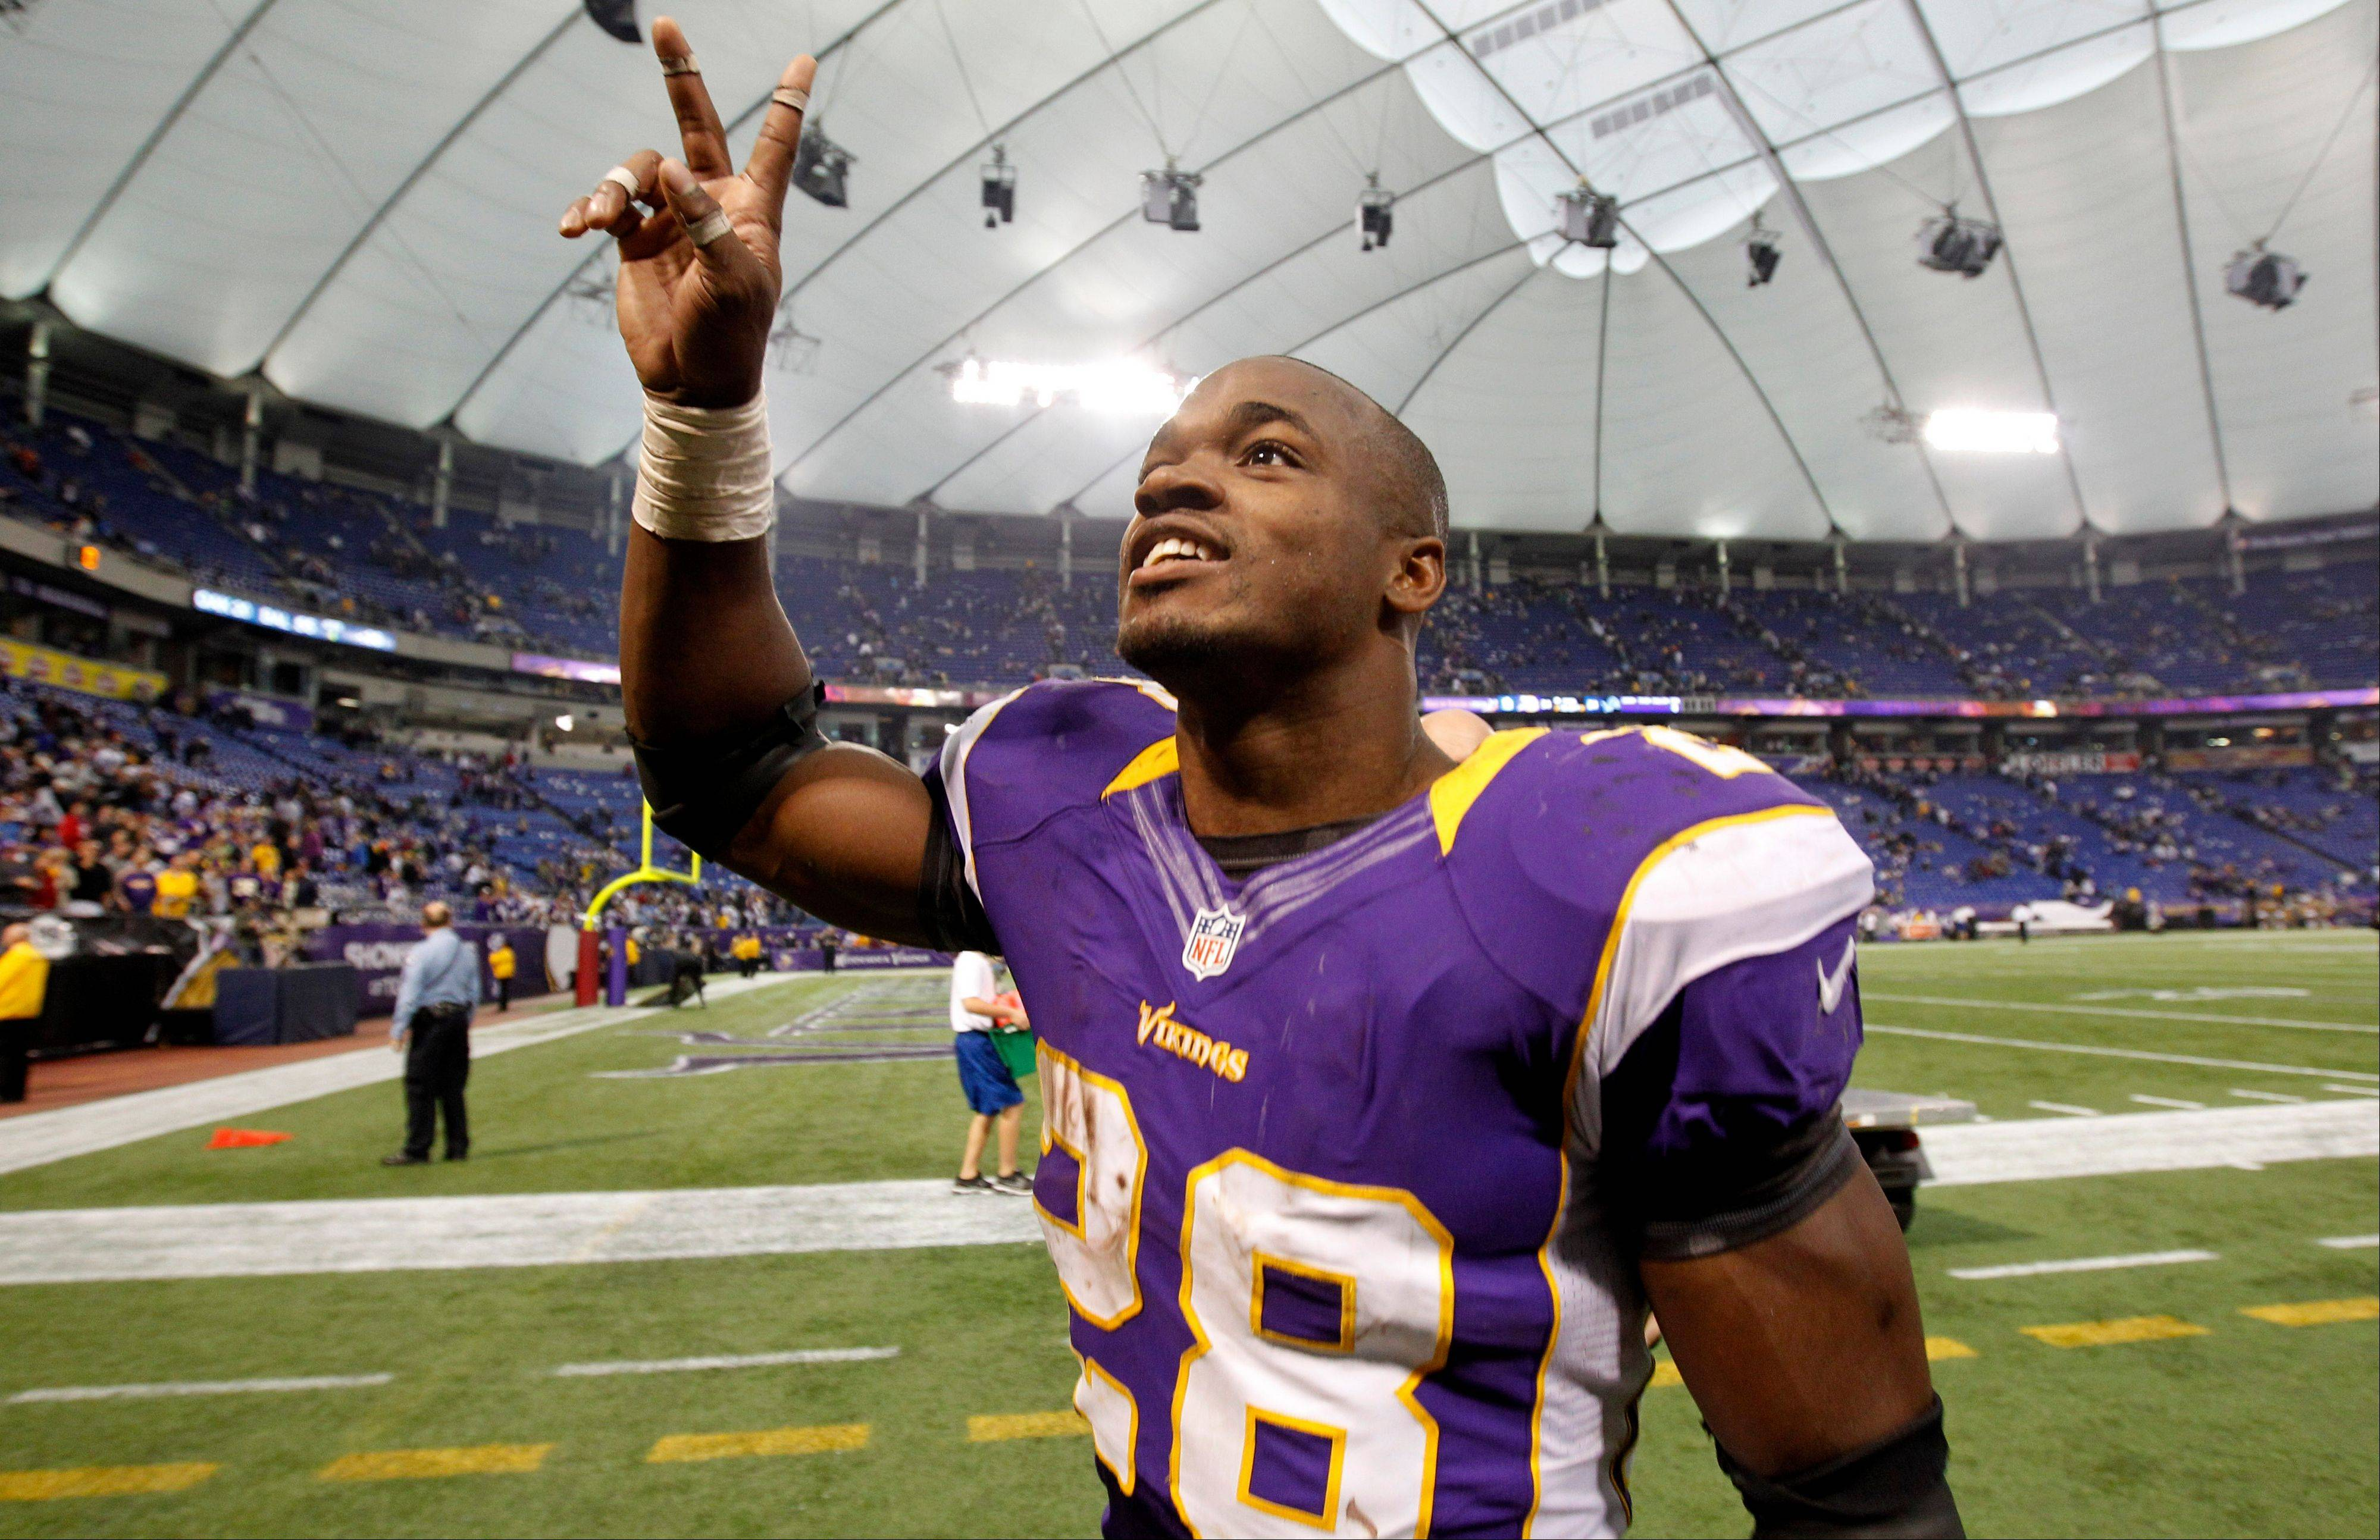 Minnesota Vikings running back Adrian Peterson celebrates after beating the Detroit Lions earlier this season. The last time the Vikings won a game at Soldier Field, Peterson rushed for 224 yards and 3 touchdowns.